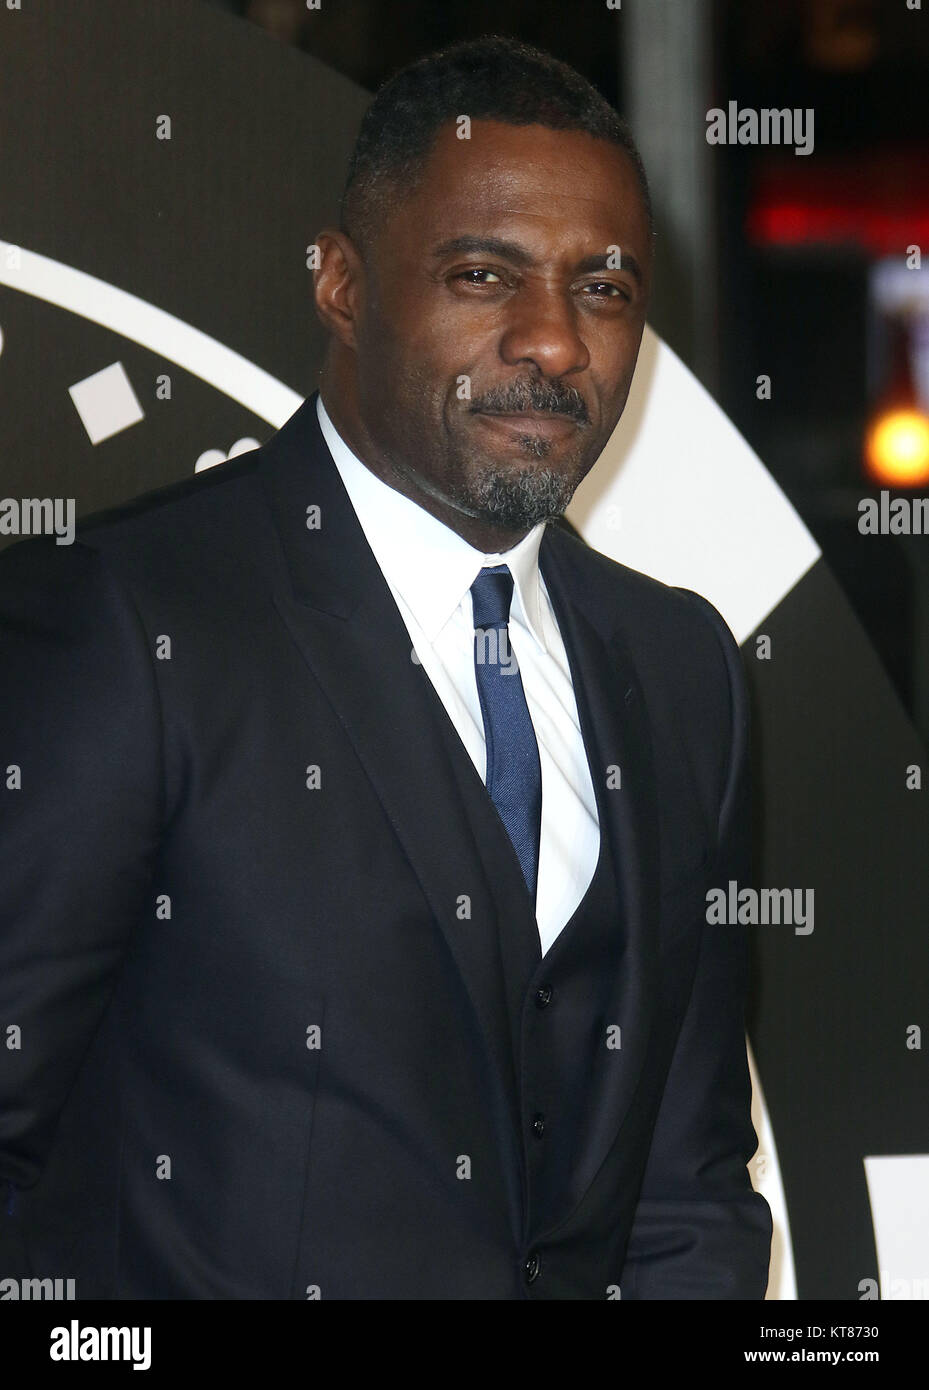 Dec 6, 2017 - Idris Elba attending 'Molly's Game' UK Premiere, Vue West End, Leicester Square in London, England, Stock Photo